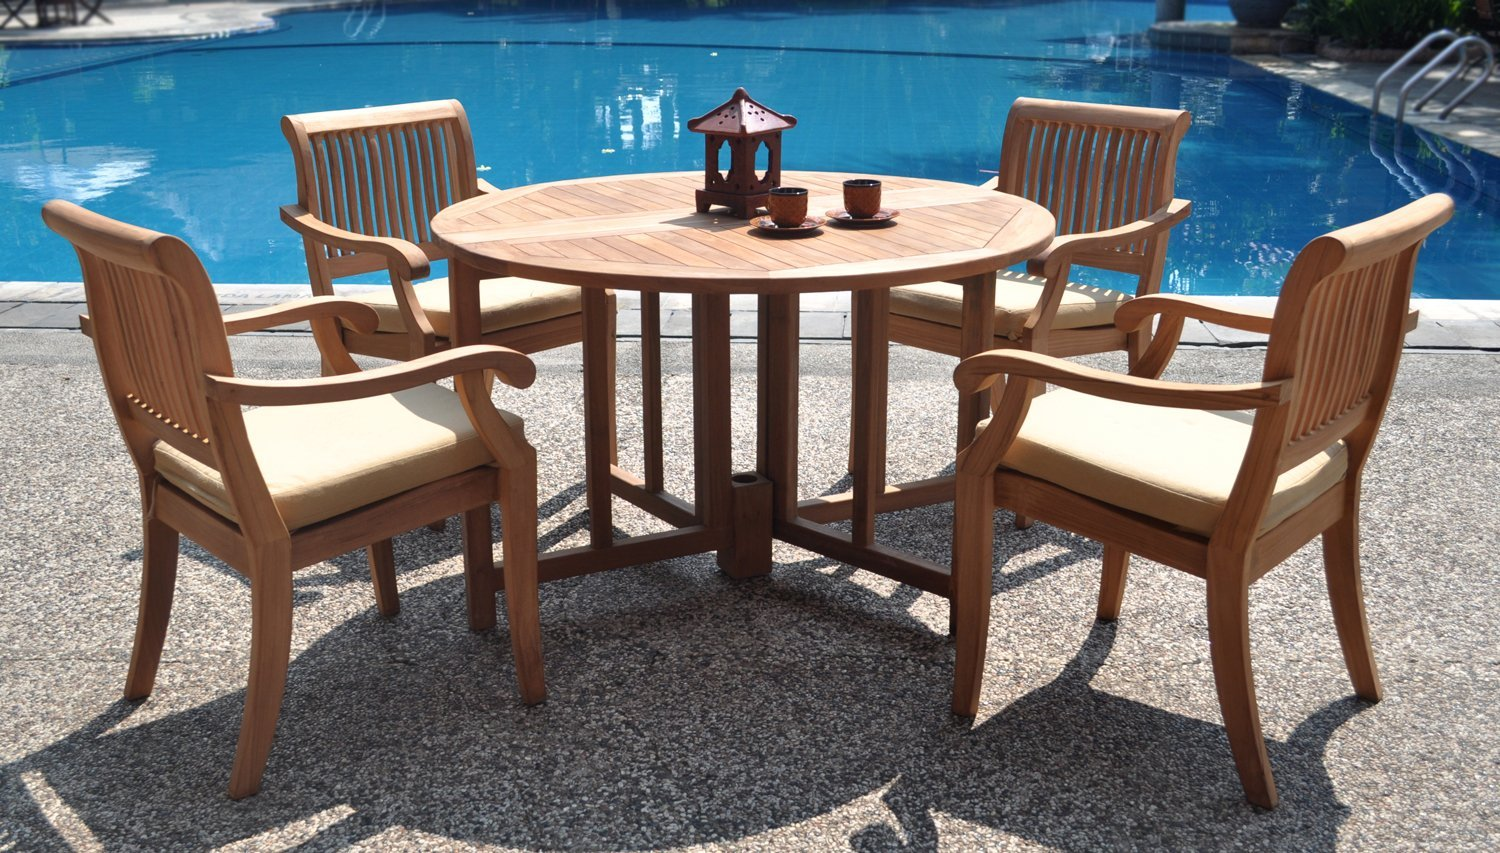 Collection teak patio furniture 5 piece grade a teak dining set 48 inch round table taewrnz